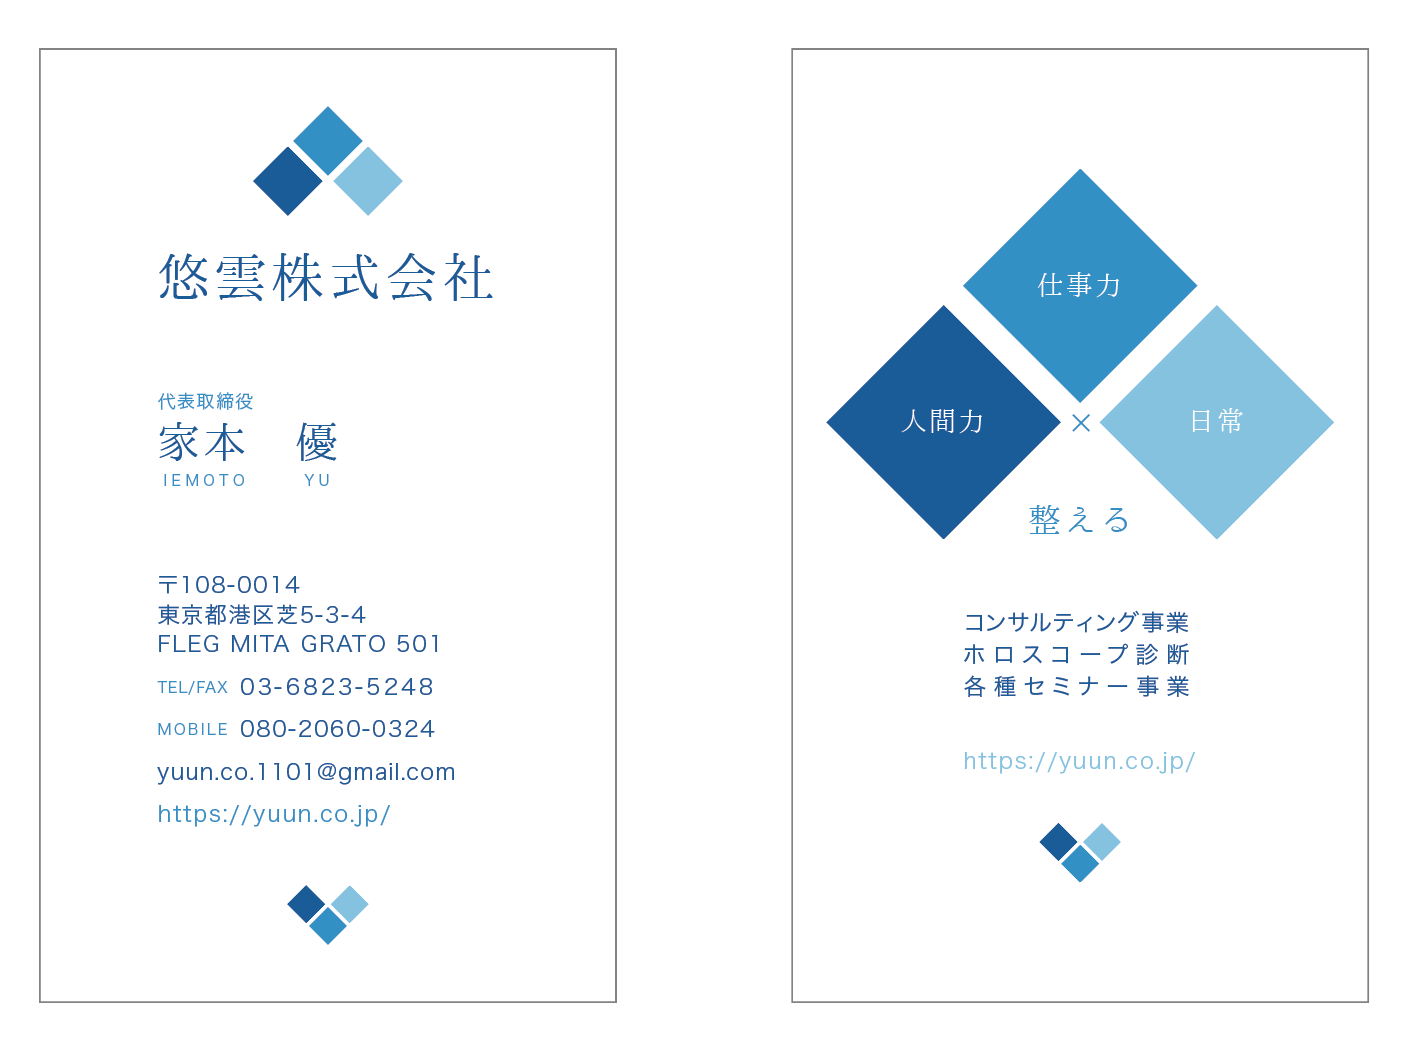 Yuun K.K. Business Card